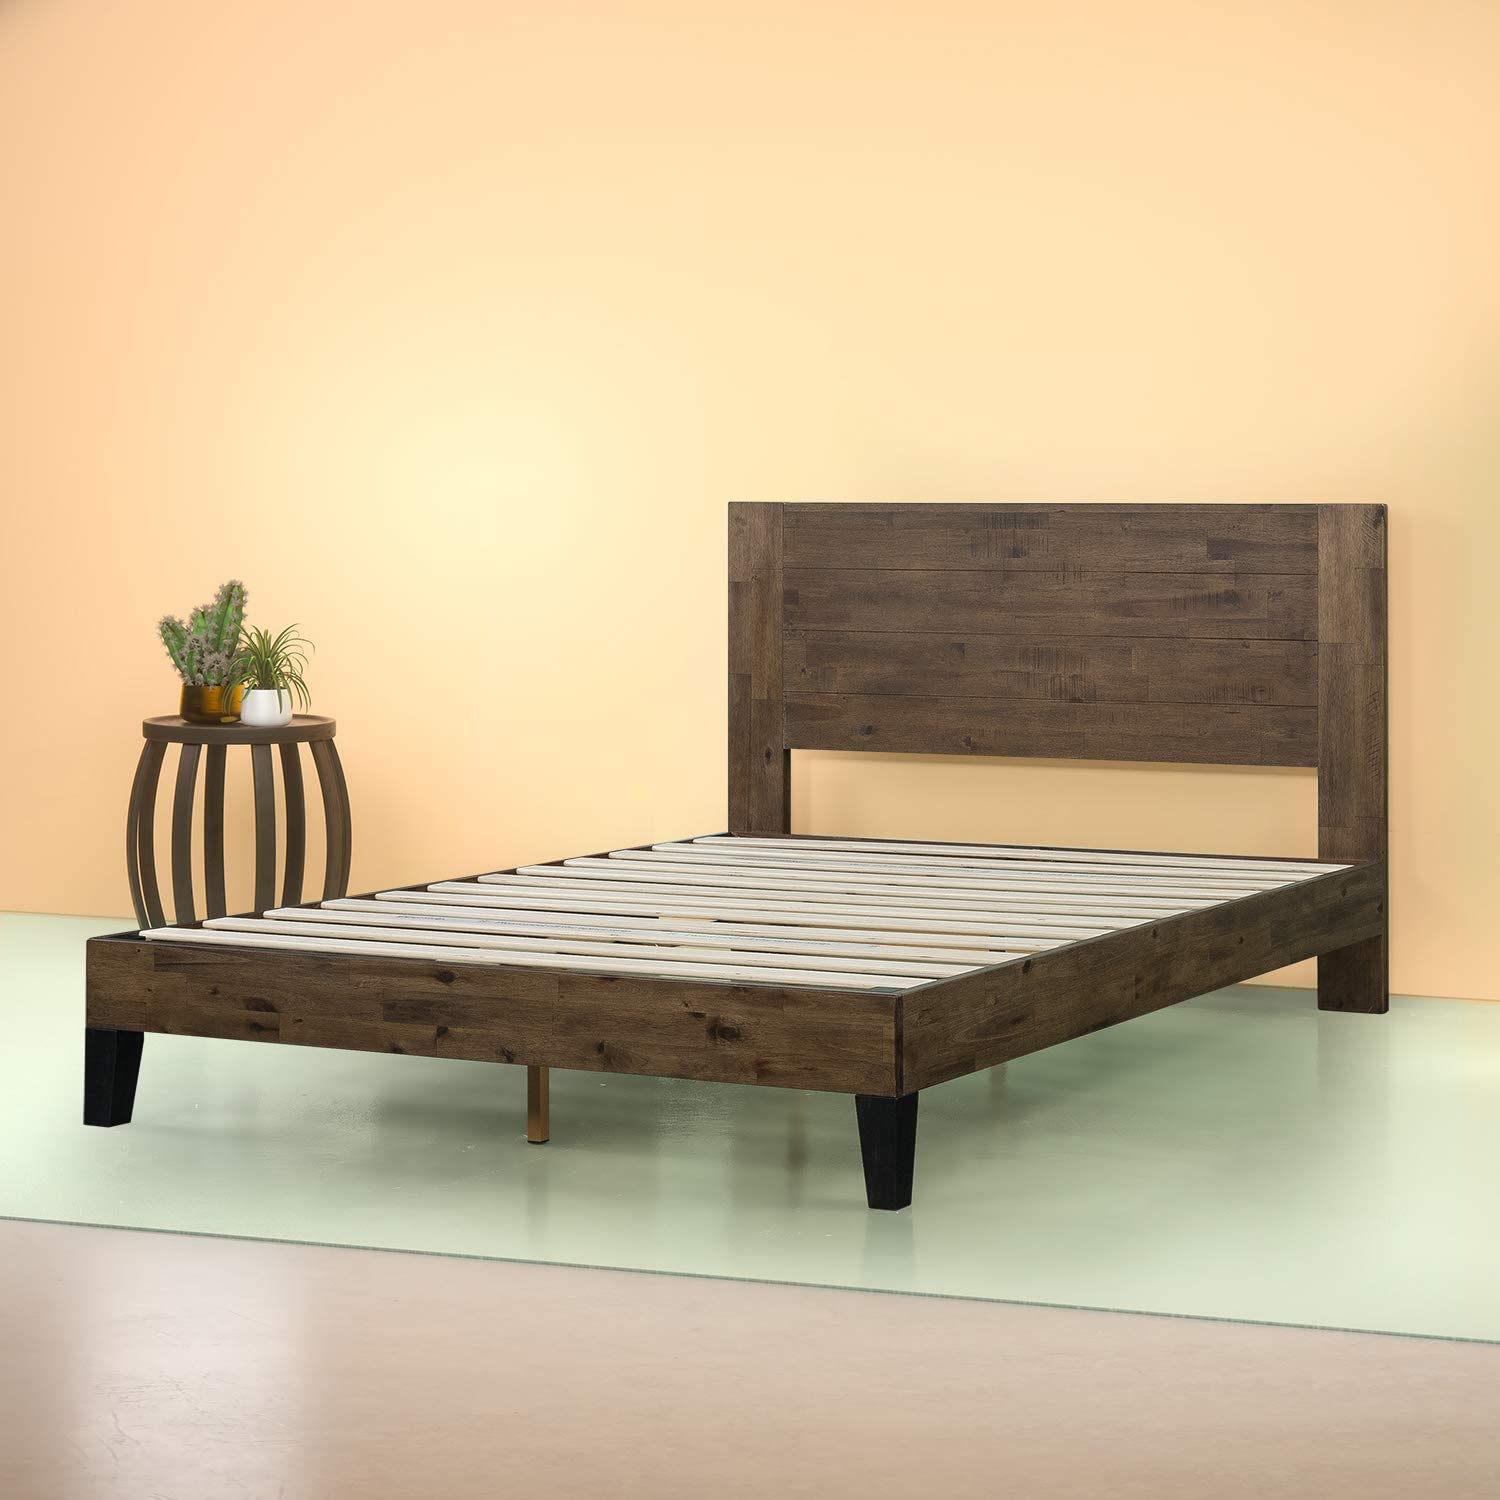 Zinus Tonja Platform Bed Mattress Foundation Box Spring Replacement Brown, Twin